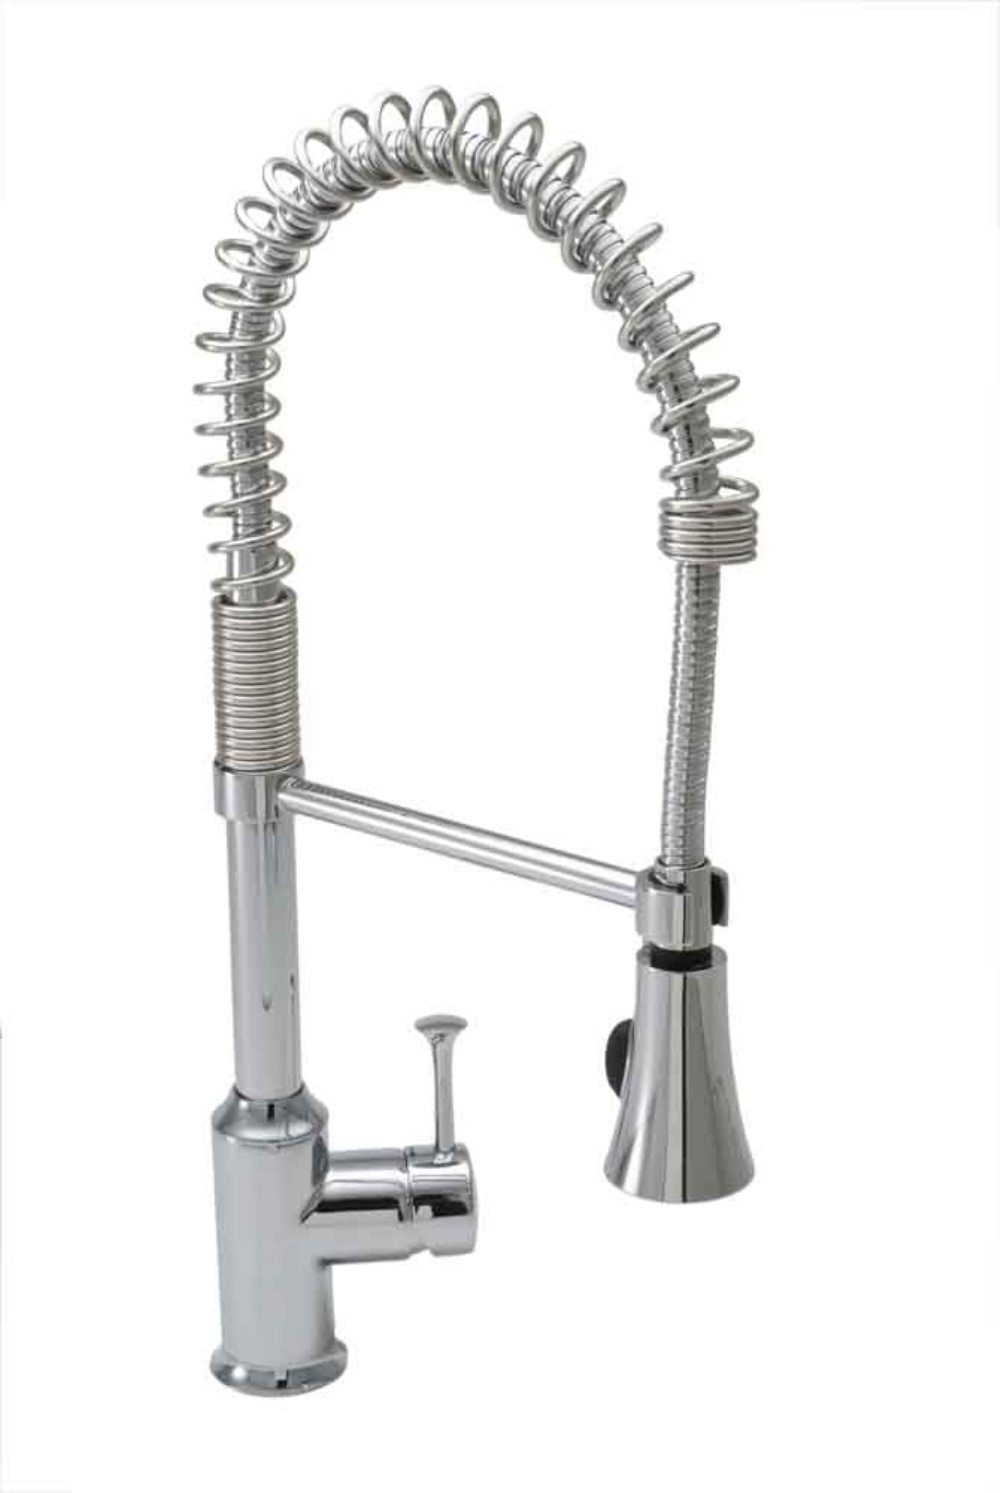 American Standard 4332.350.002 Polished Chrome Pekoe Semi Professional Pre Rinse  Kitchen Faucet   Faucet.com